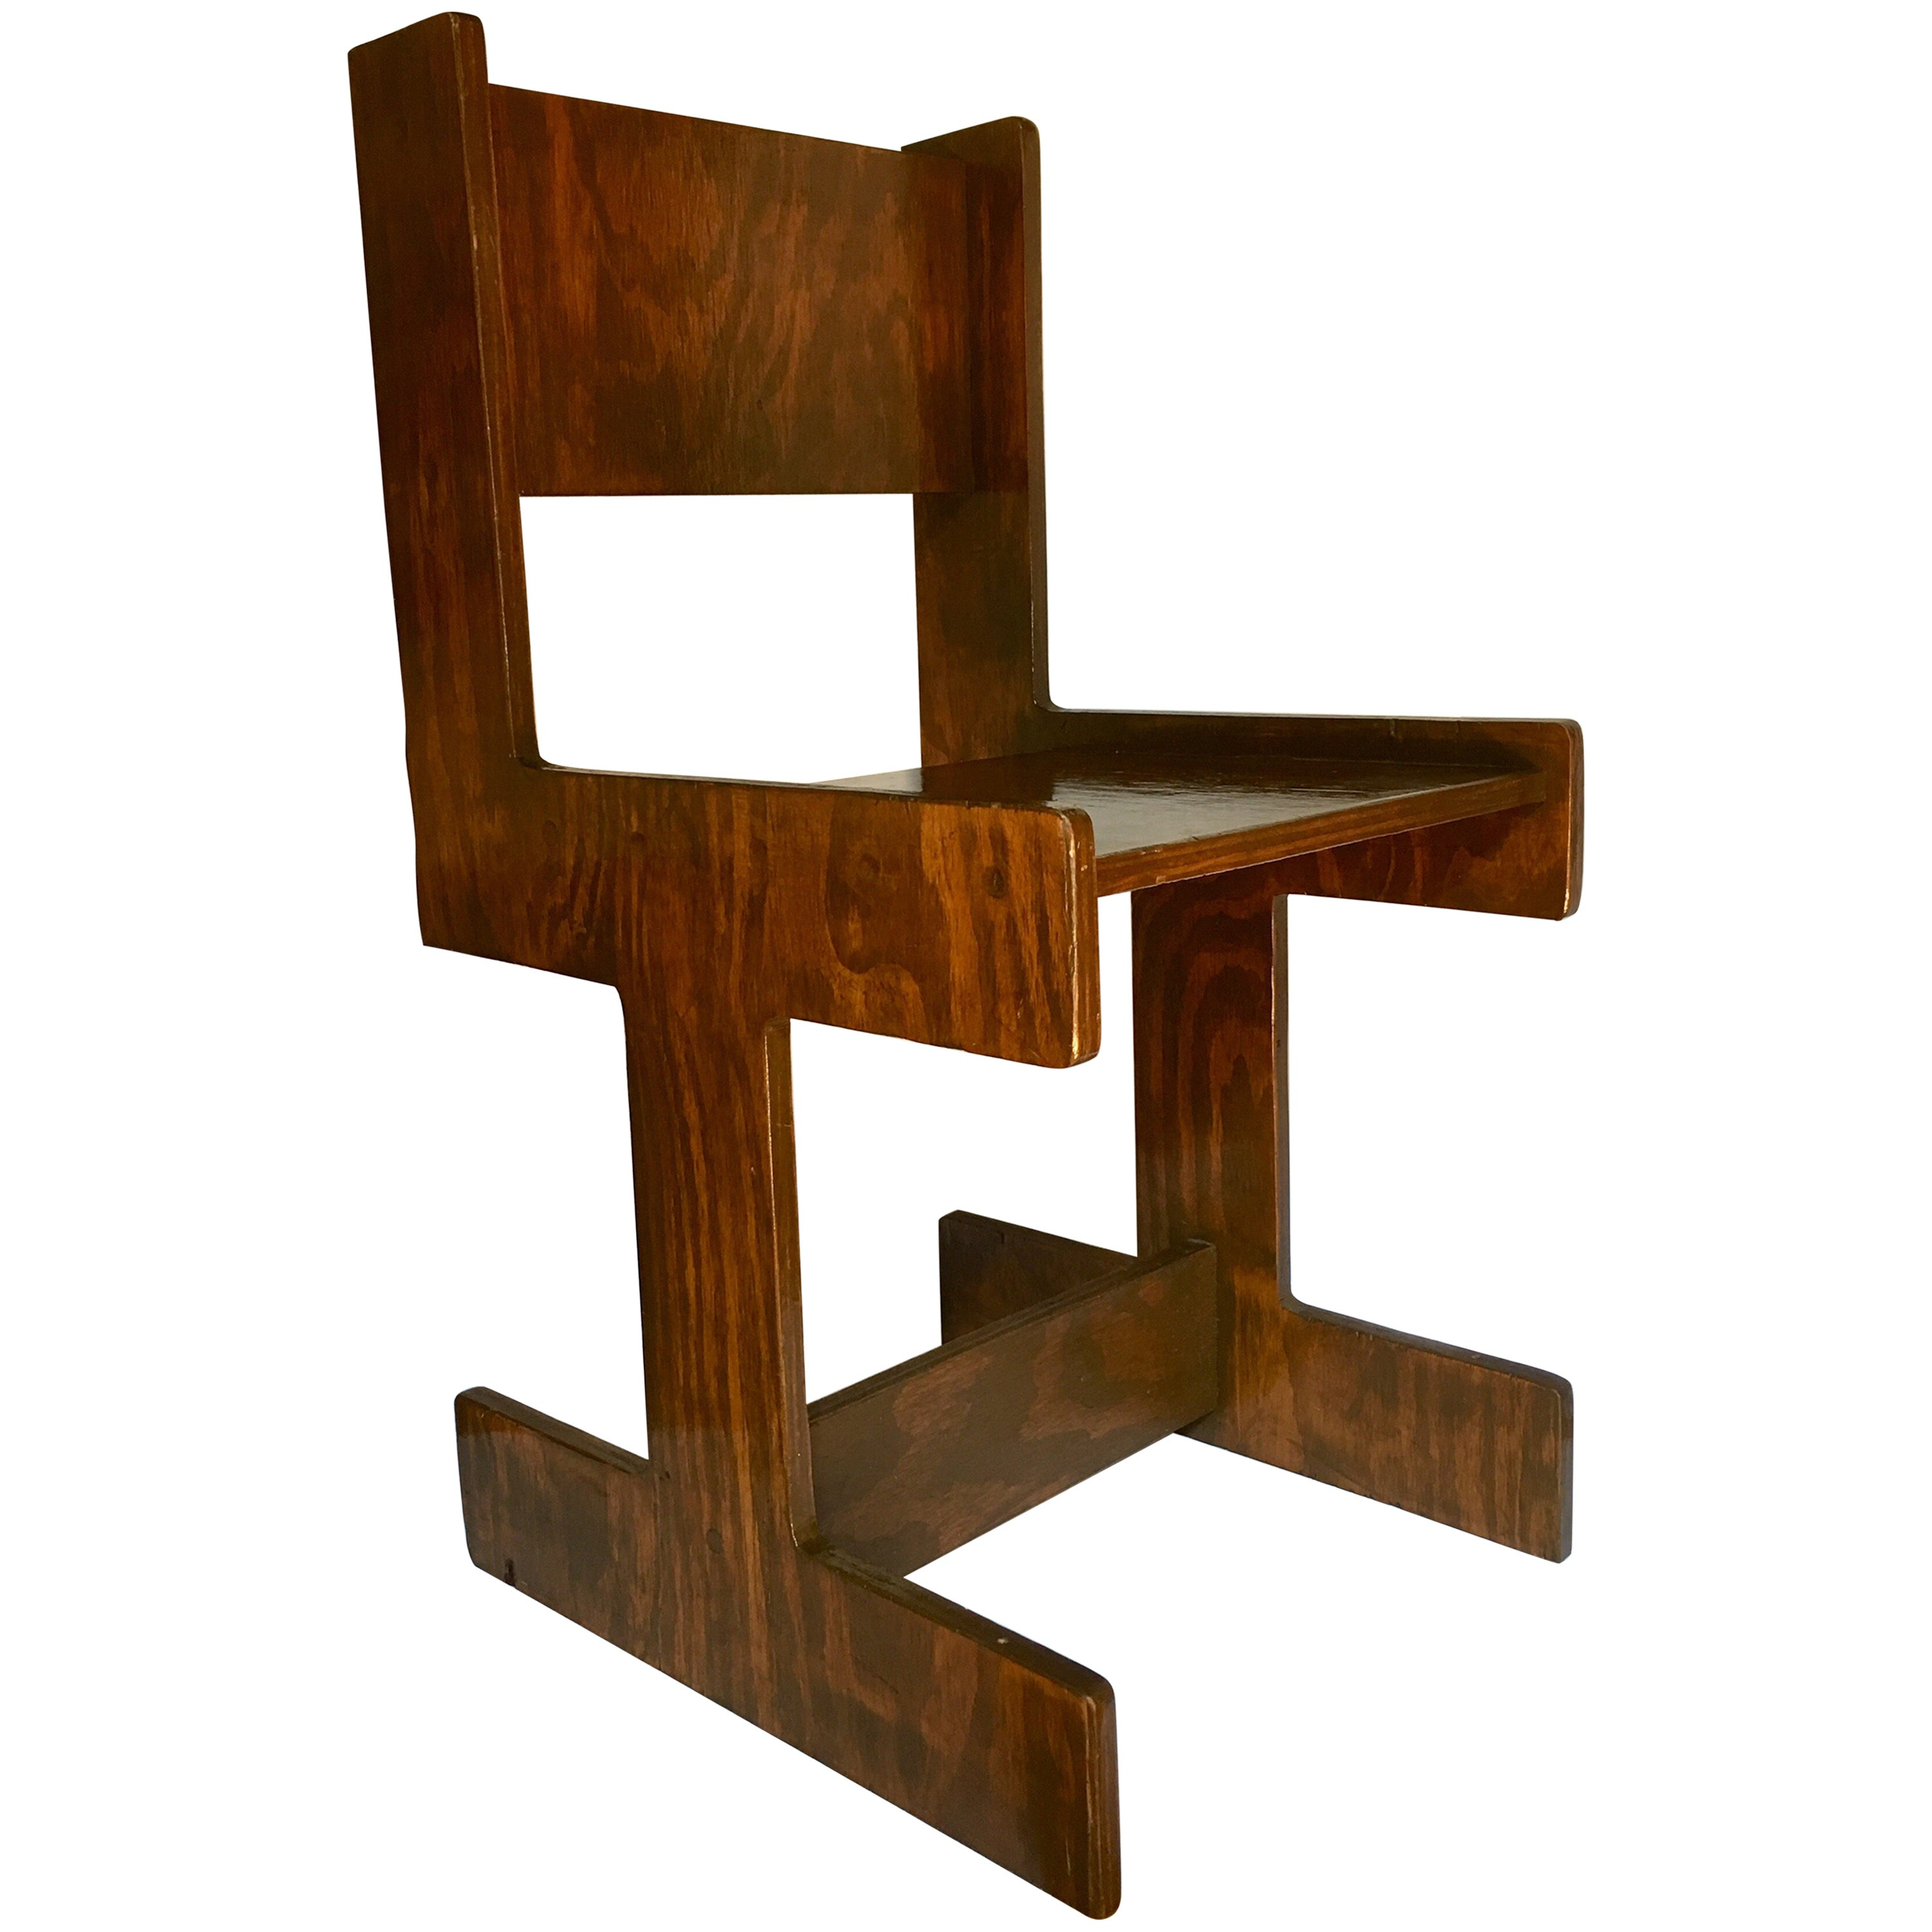 Mid Century Modern Accent Chair Mid Century Modern Studio Crafted Cubist Wood Accent Chair